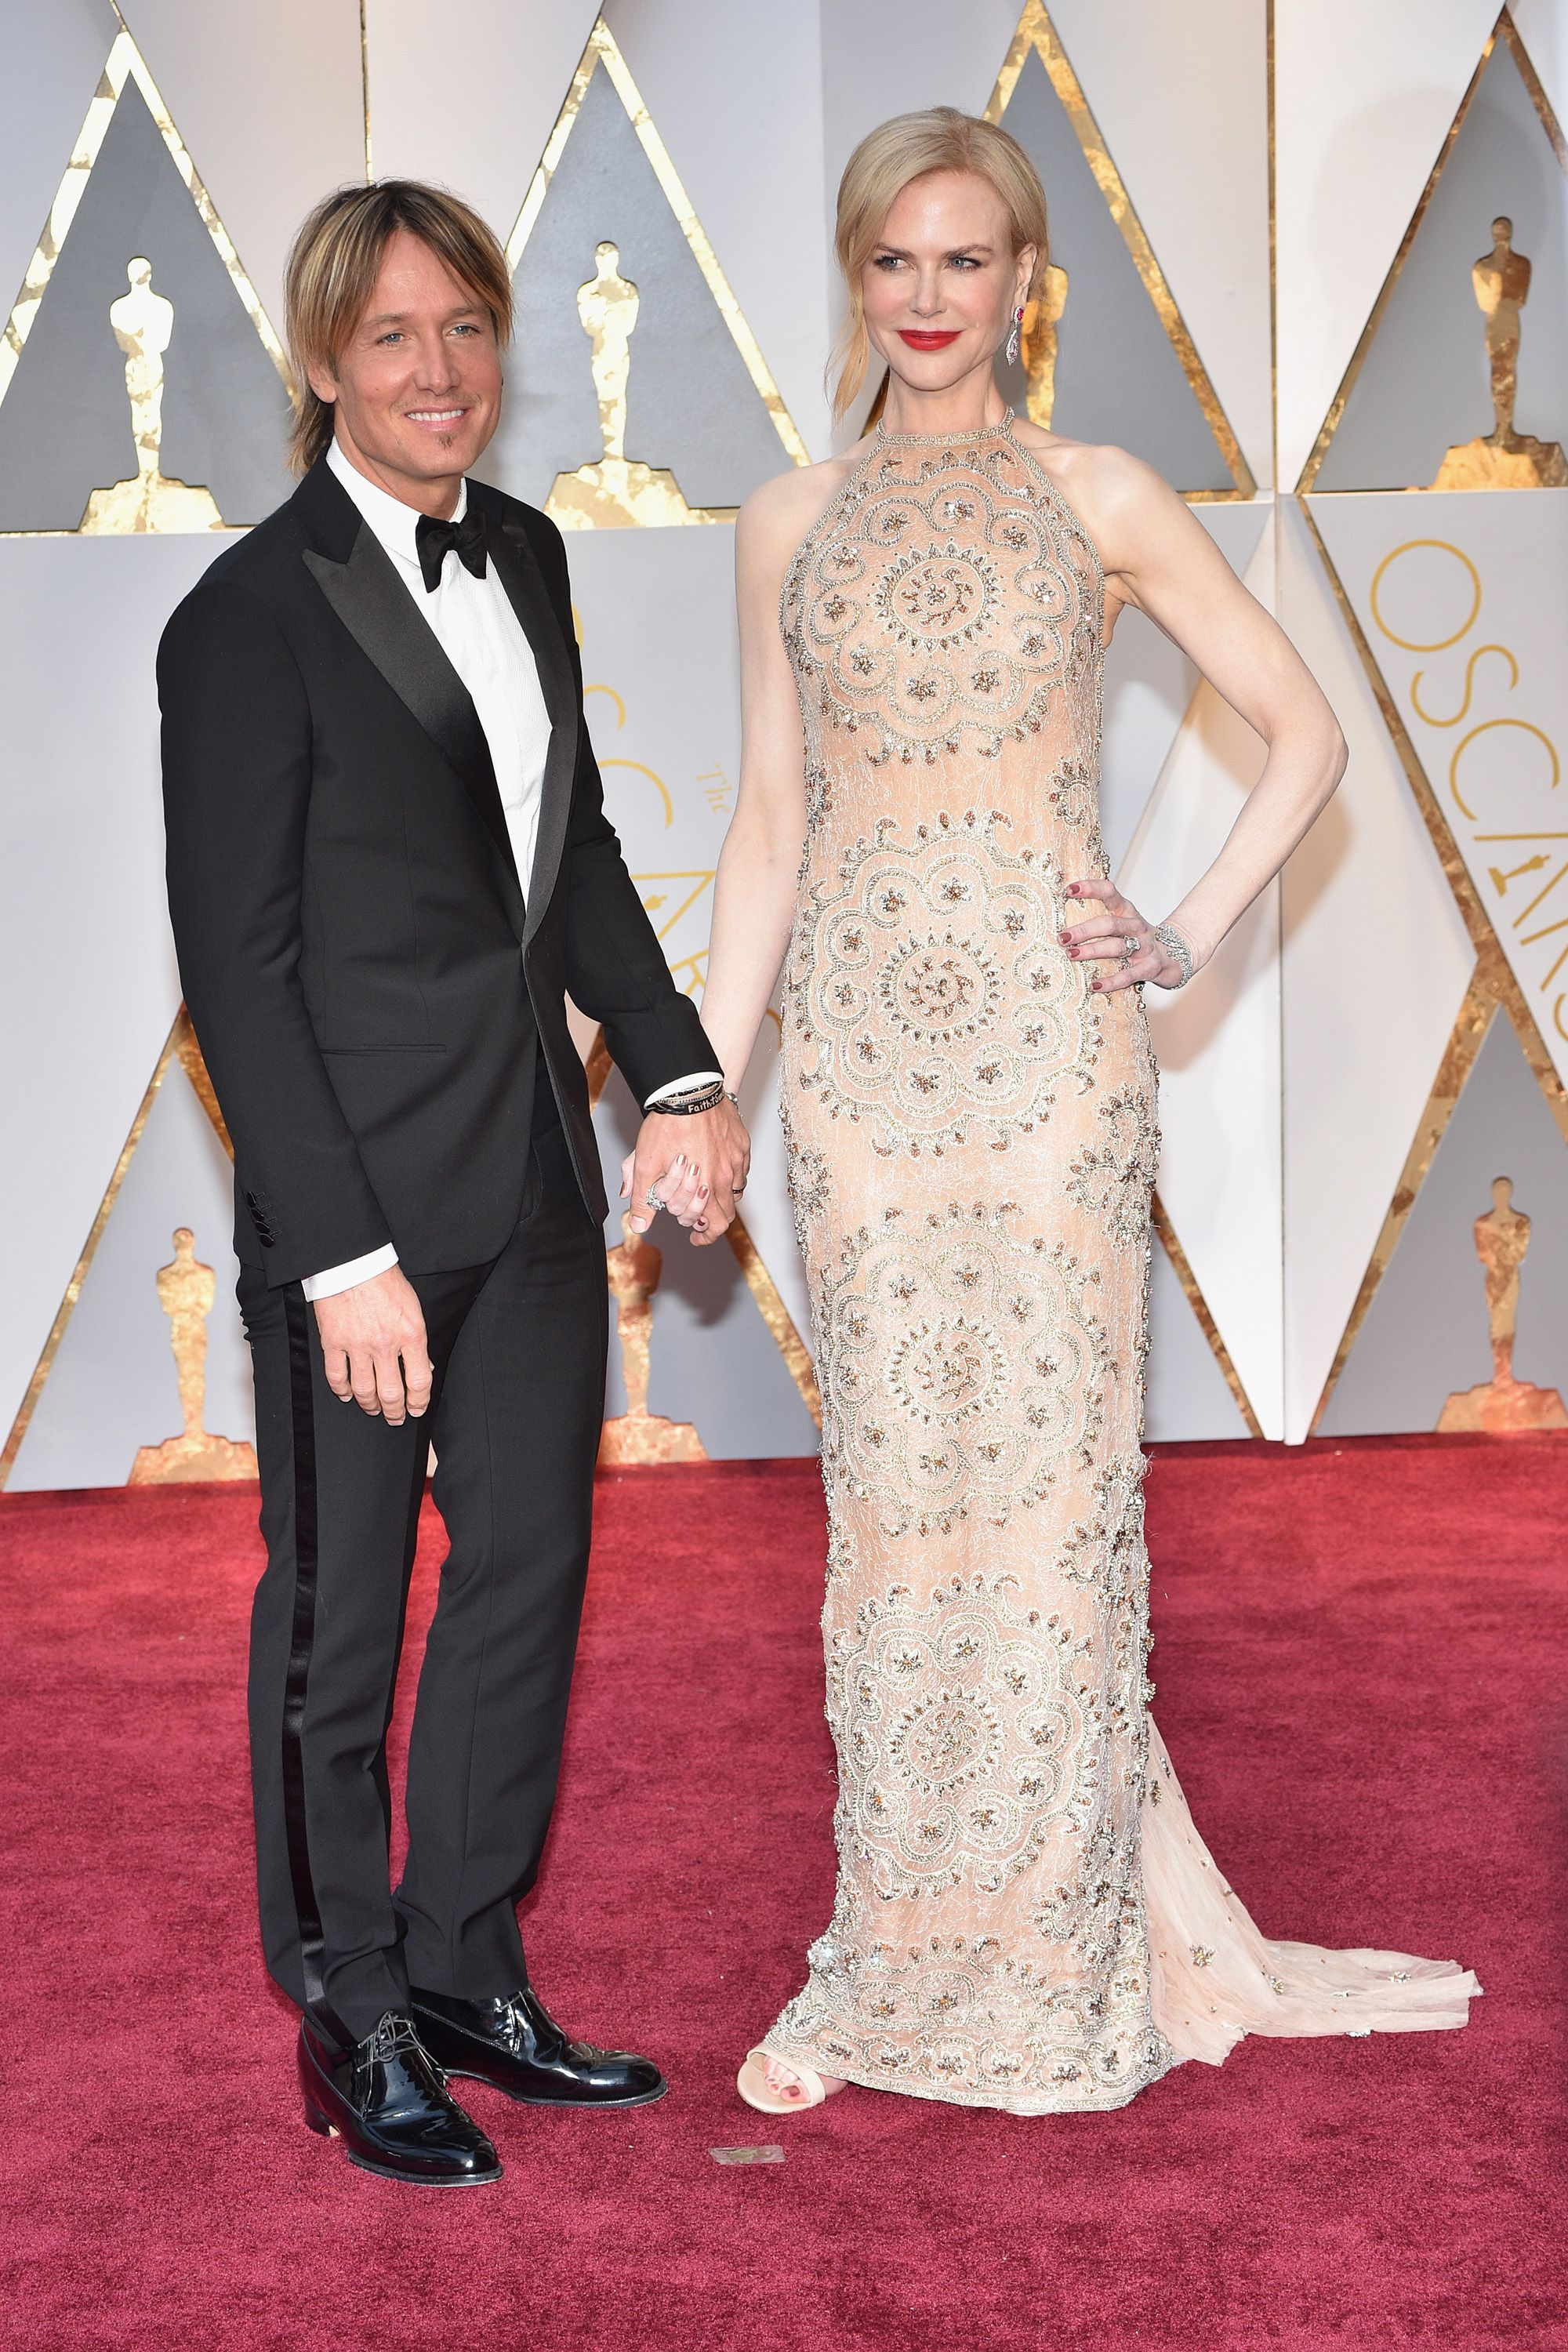 HOLLYWOOD, CA - FEBRUARY 26:  (L-R) Singer Keith Urban and actor Nicole Kidman attend the 89th Annual Academy Awards at Hollywood &amp&#x3B; Highland Center on February 26, 2017 in Hollywood, California.  (Photo by Kevin Mazur/Getty Images)